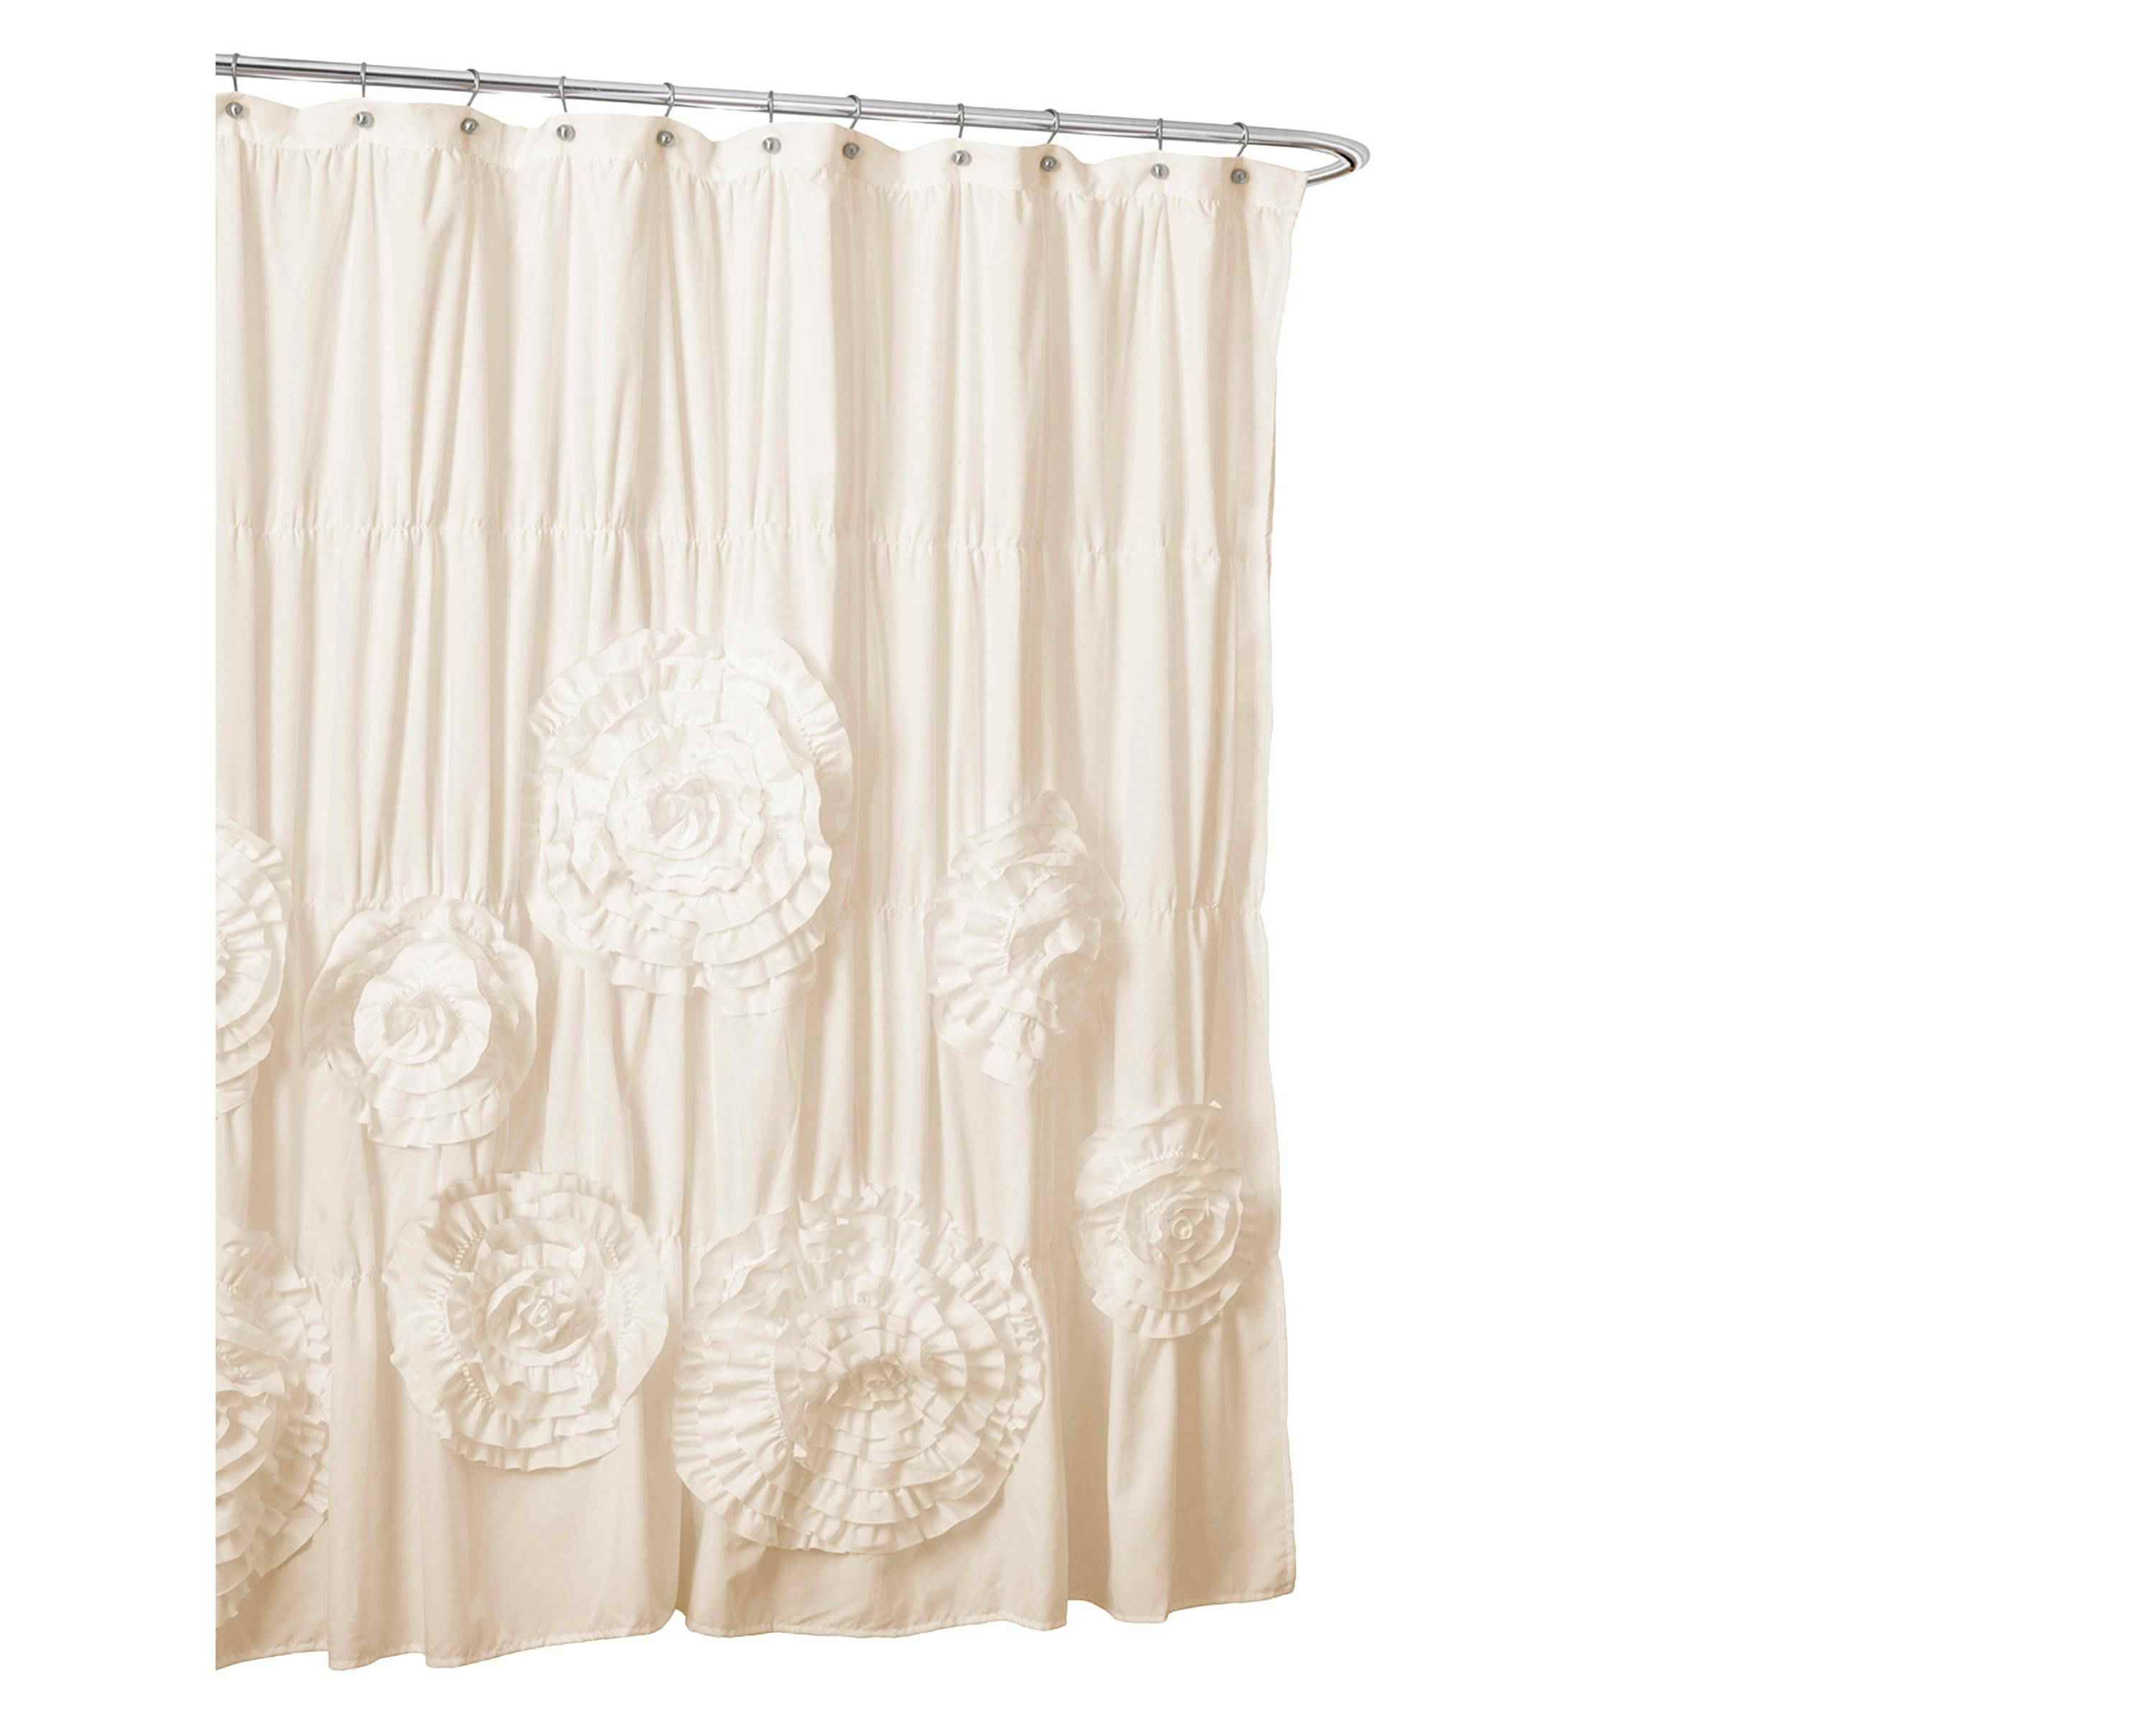 valance home decor ideas minimalist design curtain and shower curtains